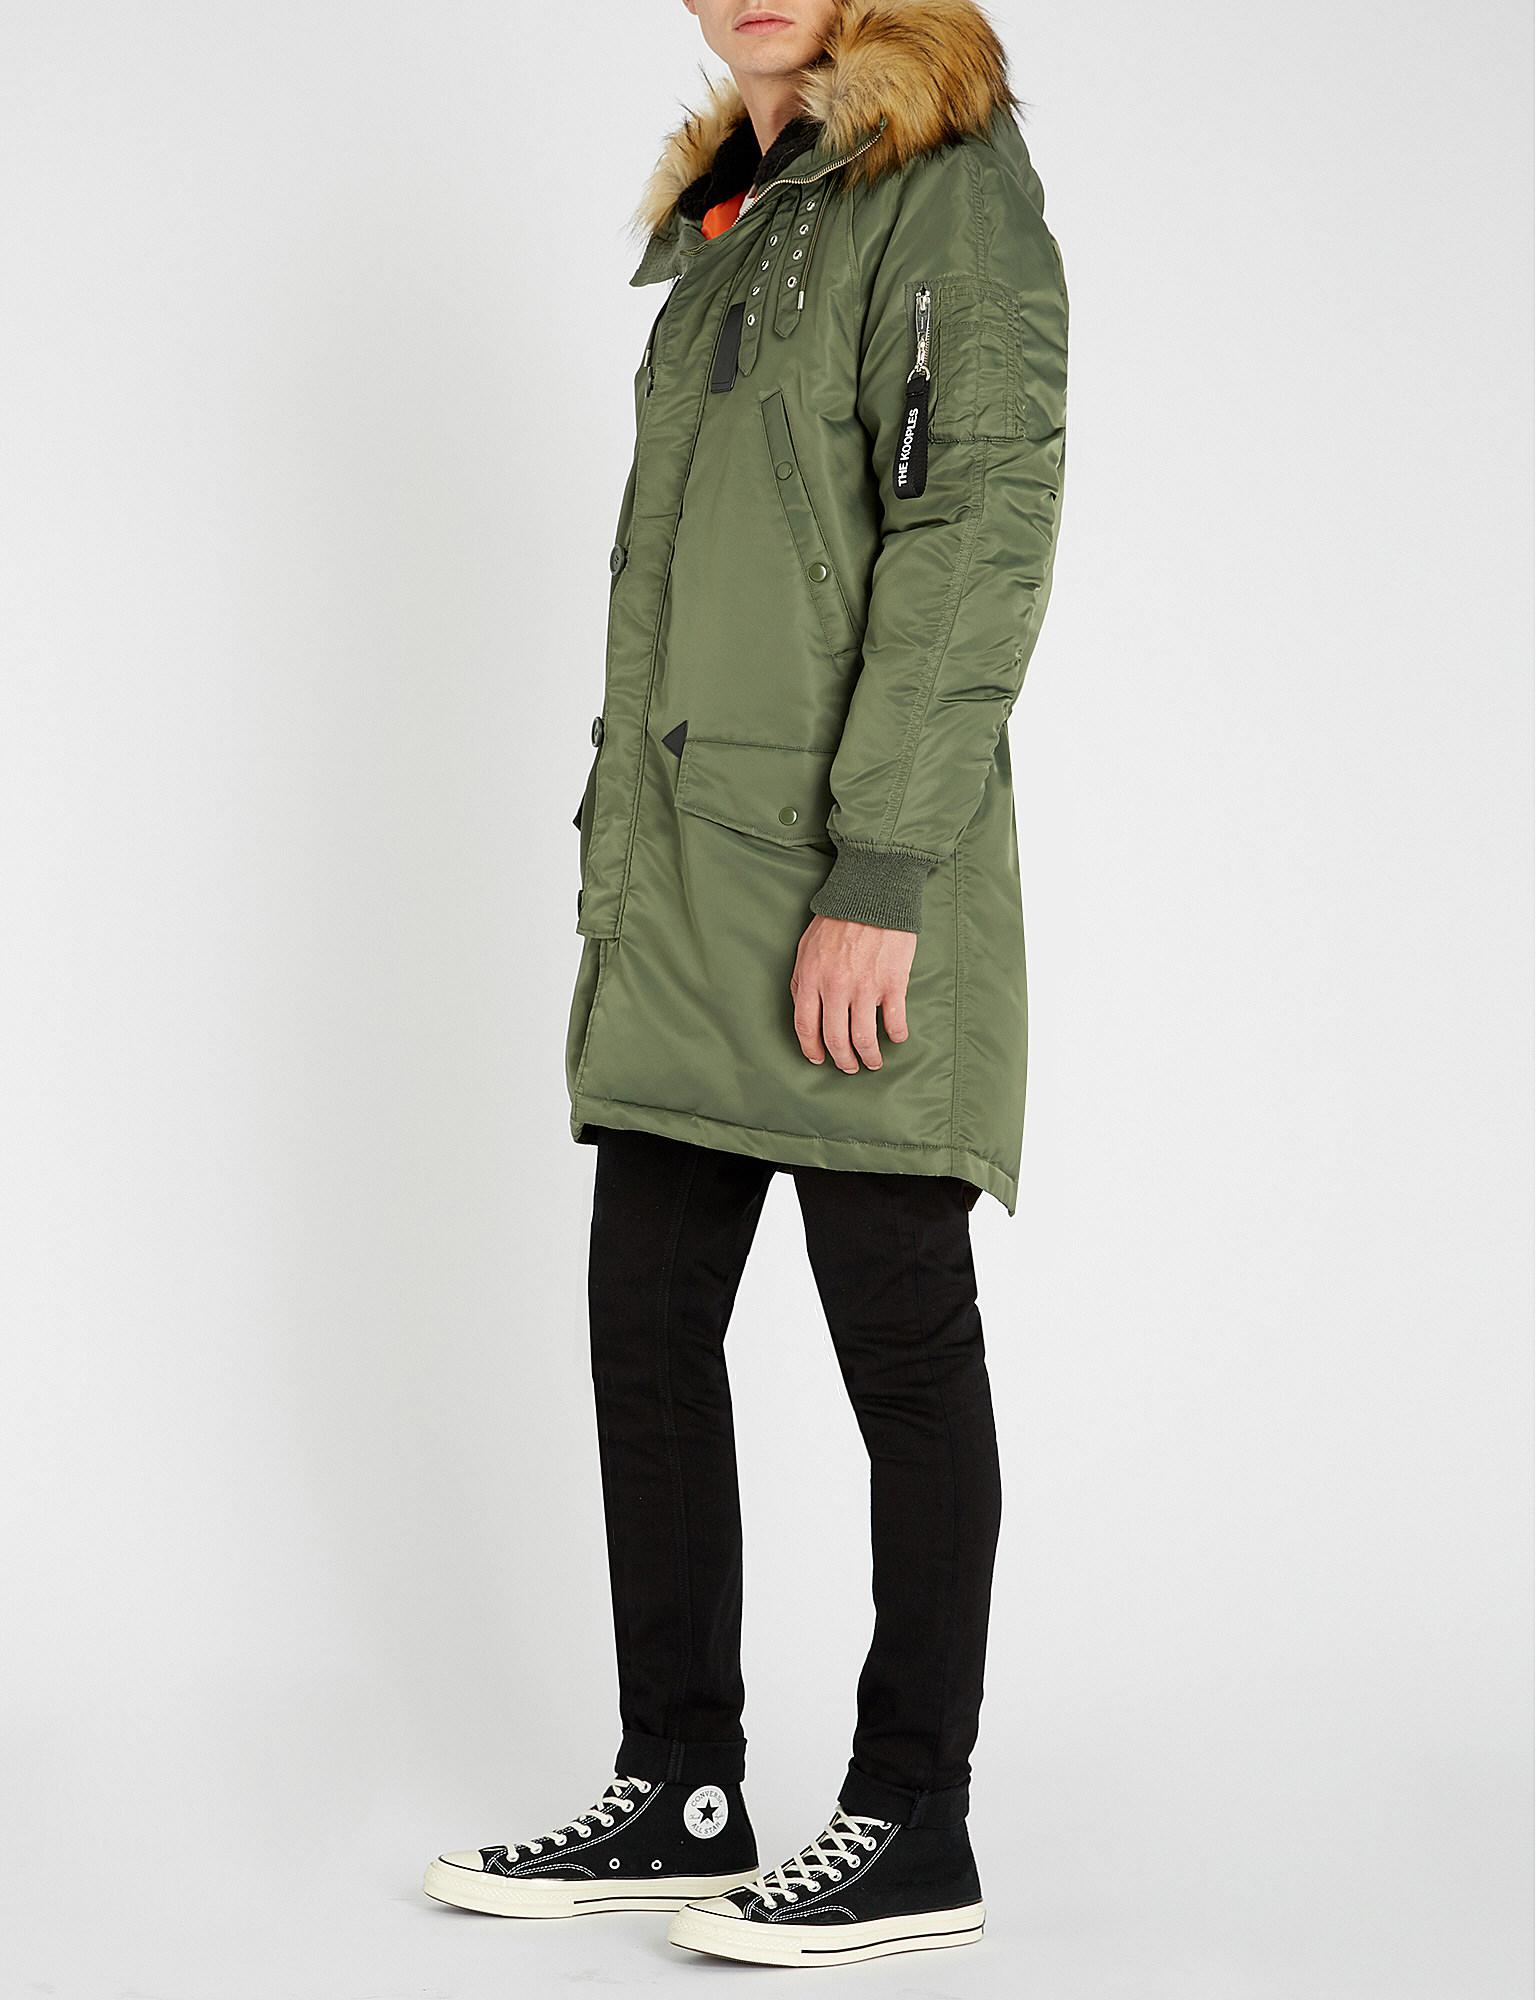 4ced537223 The Kooples - Green Faux Fur-trim Hooded Shell Jacket for Men - Lyst. View  fullscreen